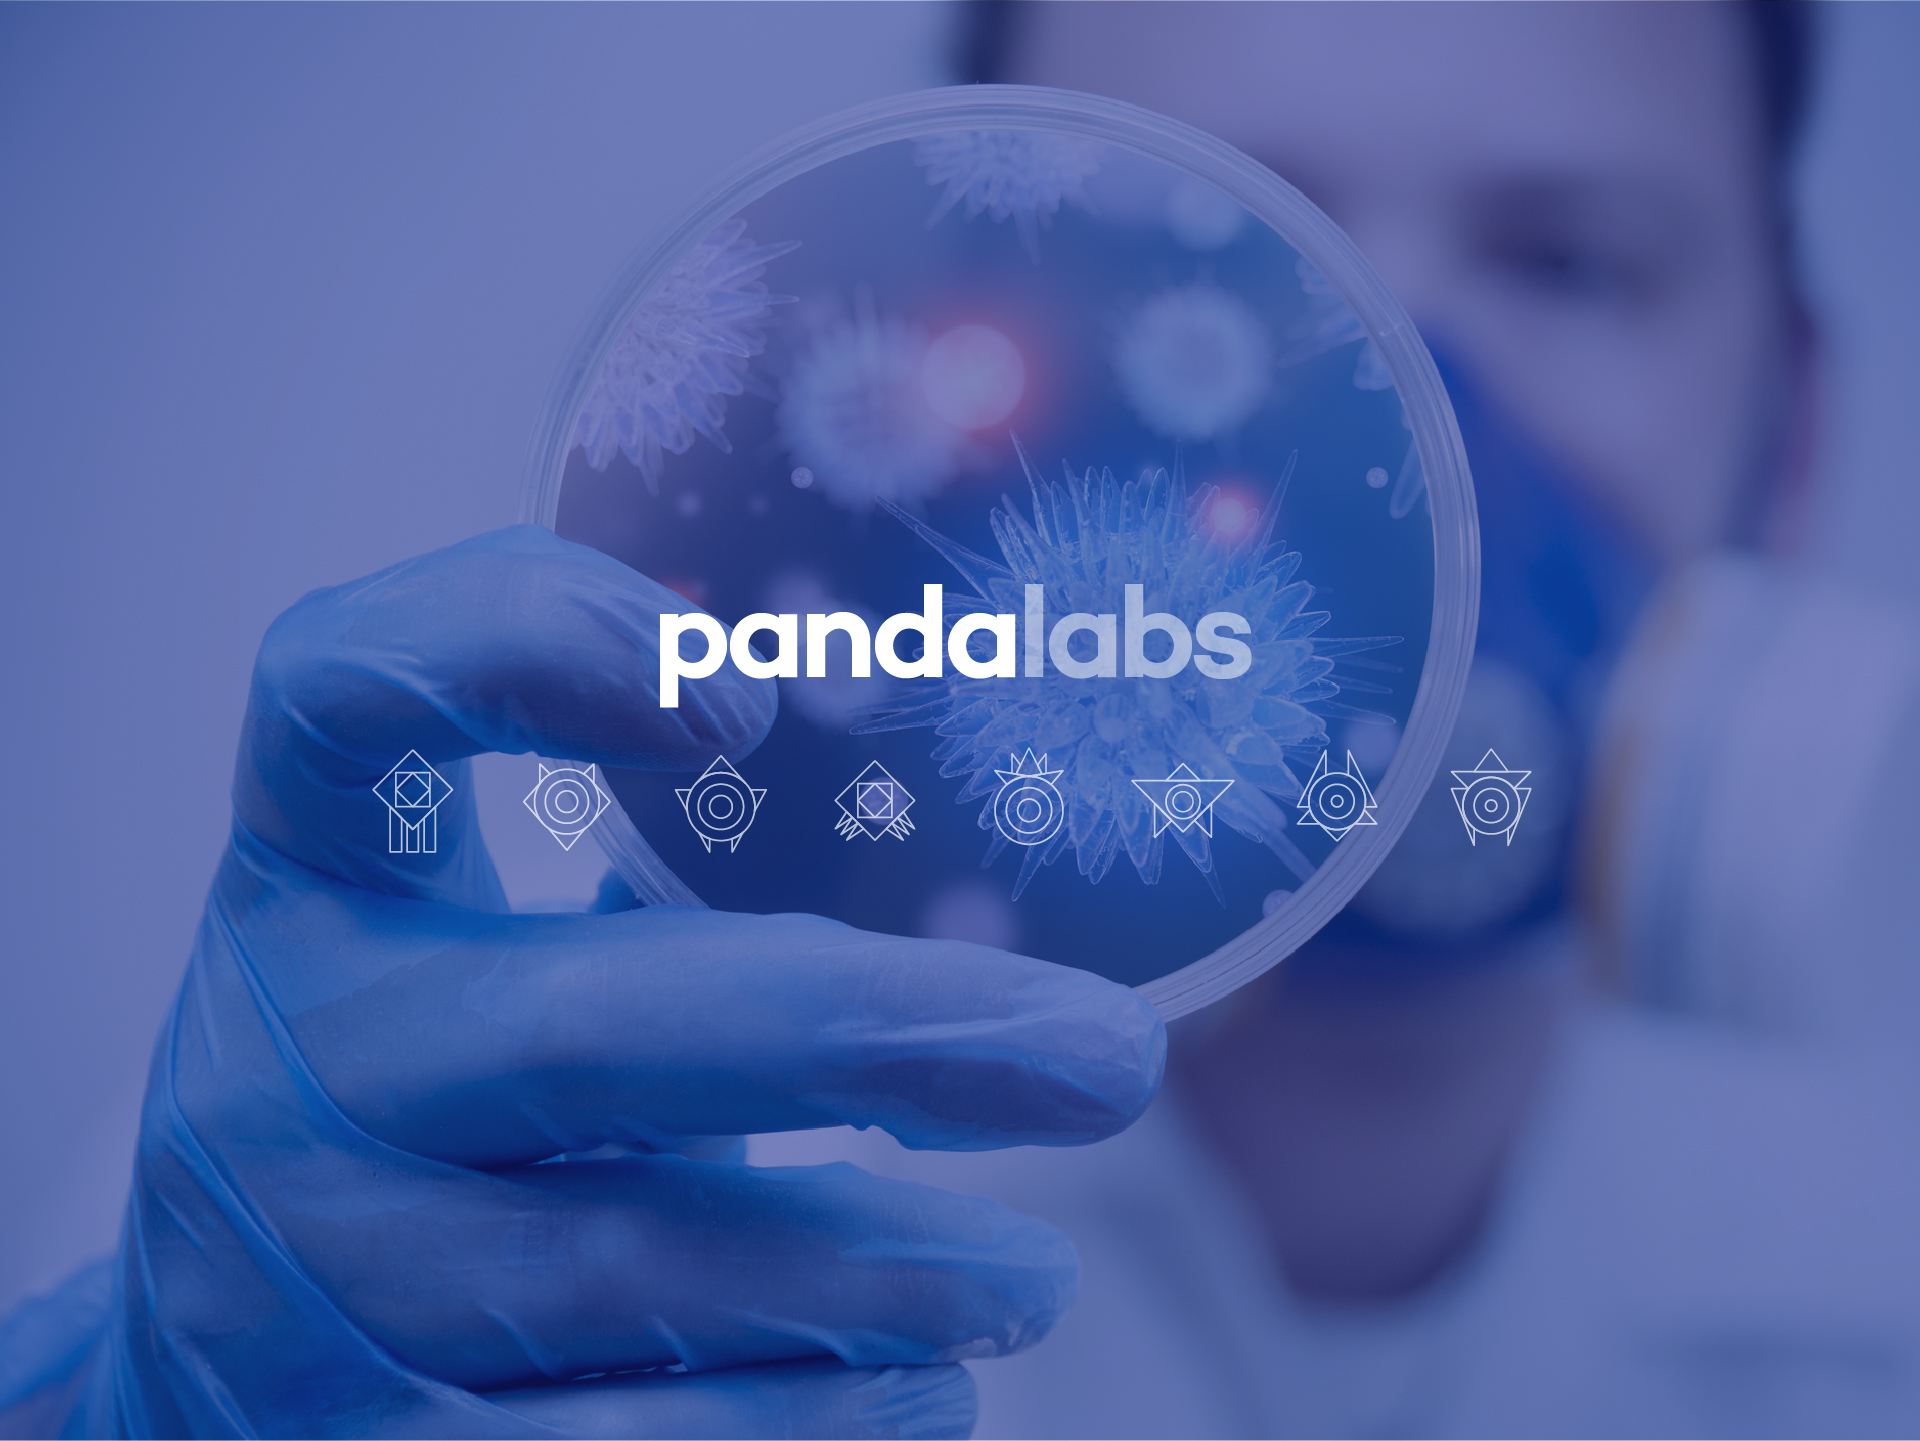 pandalabs-predictions